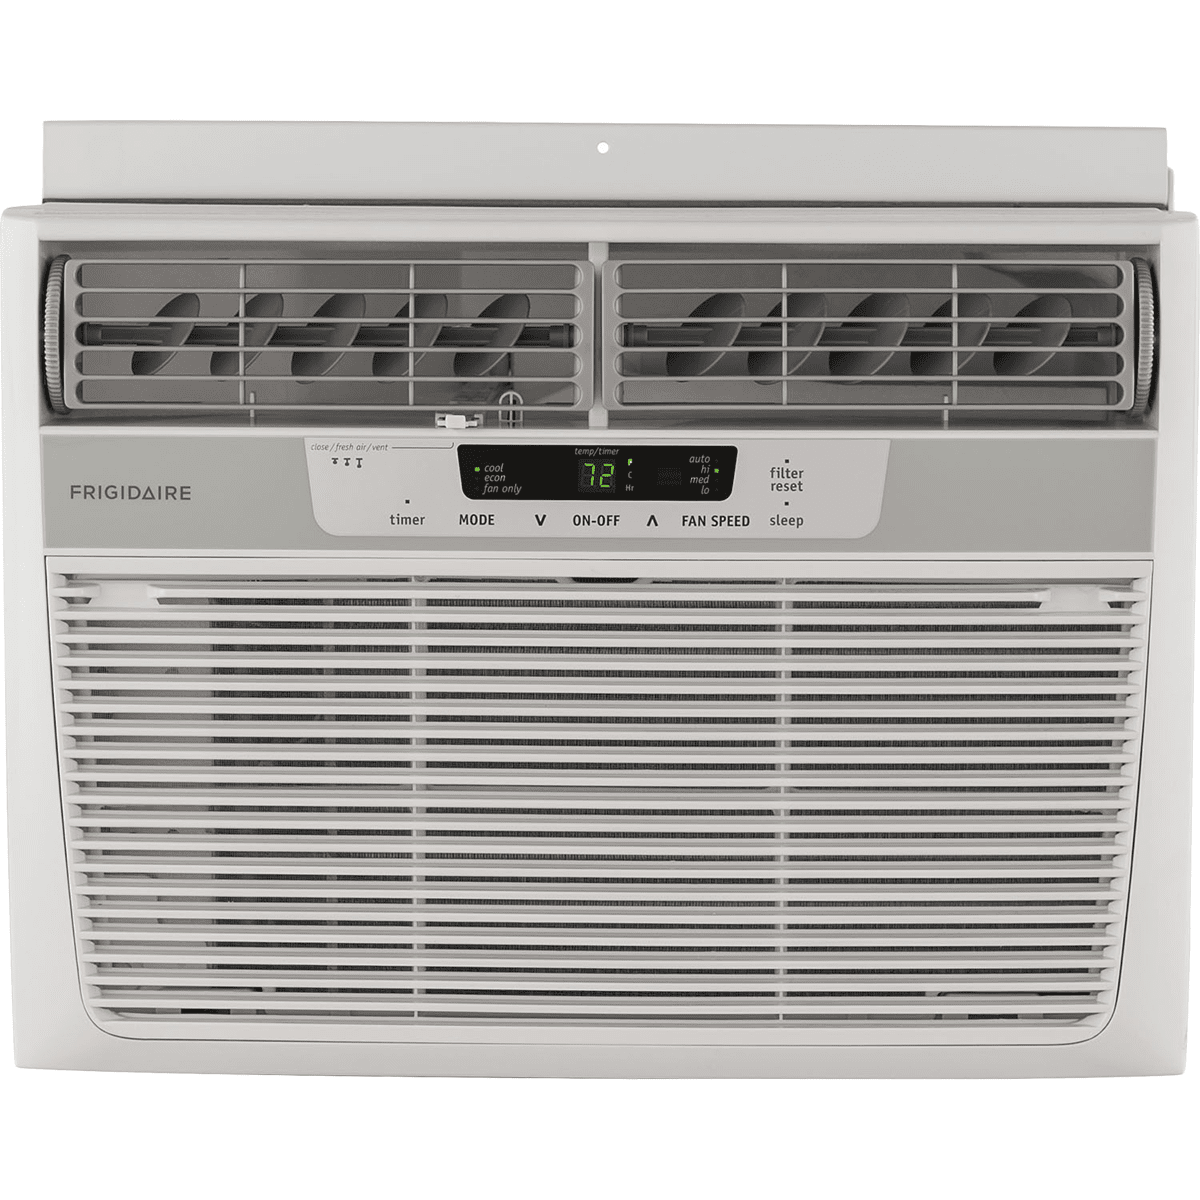 Frigidaire FFRA1222R1 12,000 BTU Window Air Conditioner